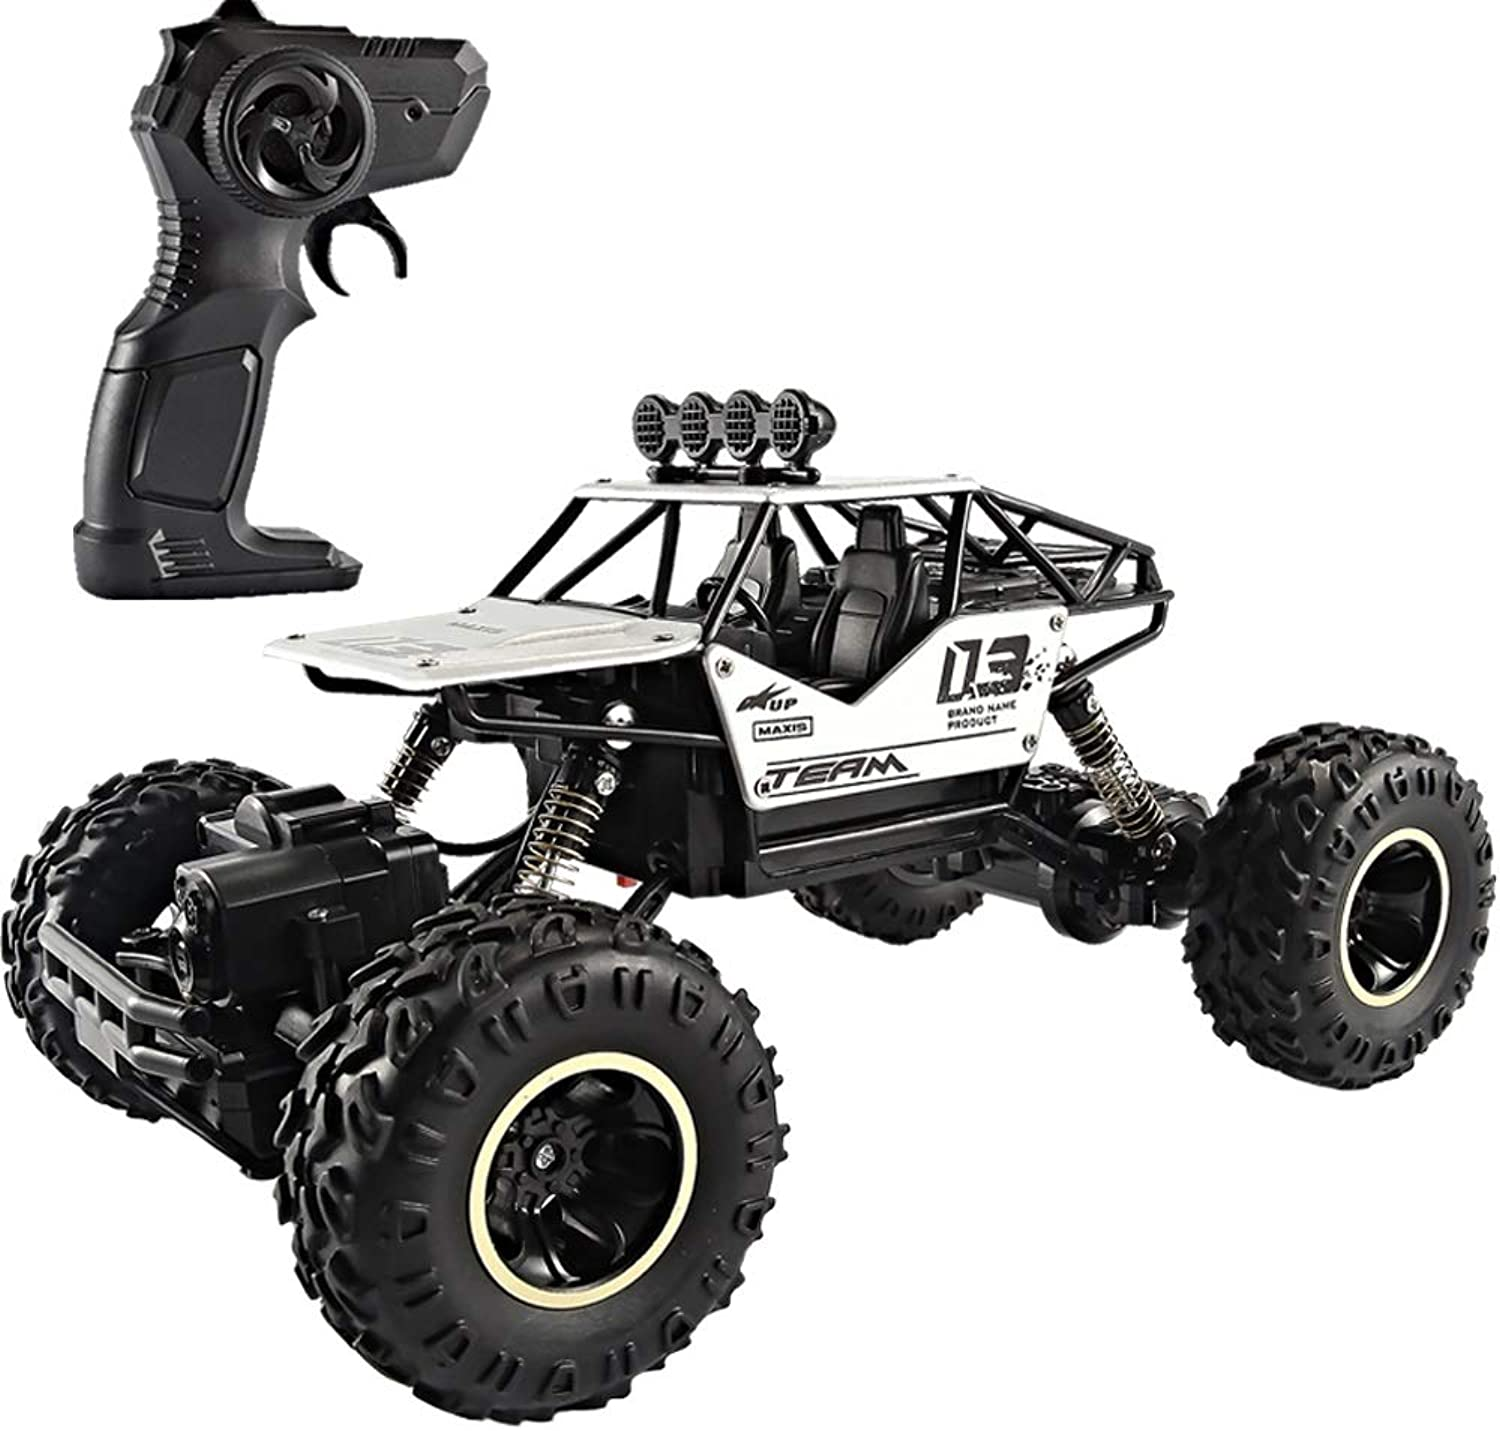 PETRLOY RC Truck 1 14 Scale Rechargeable Remote Control Car Crawler Off Road Monster Crawlers Toy 2.4 Ghz 4WD for Adults Kids Car Terrain Cars Electric Truck Radio Fast 30+ MPH